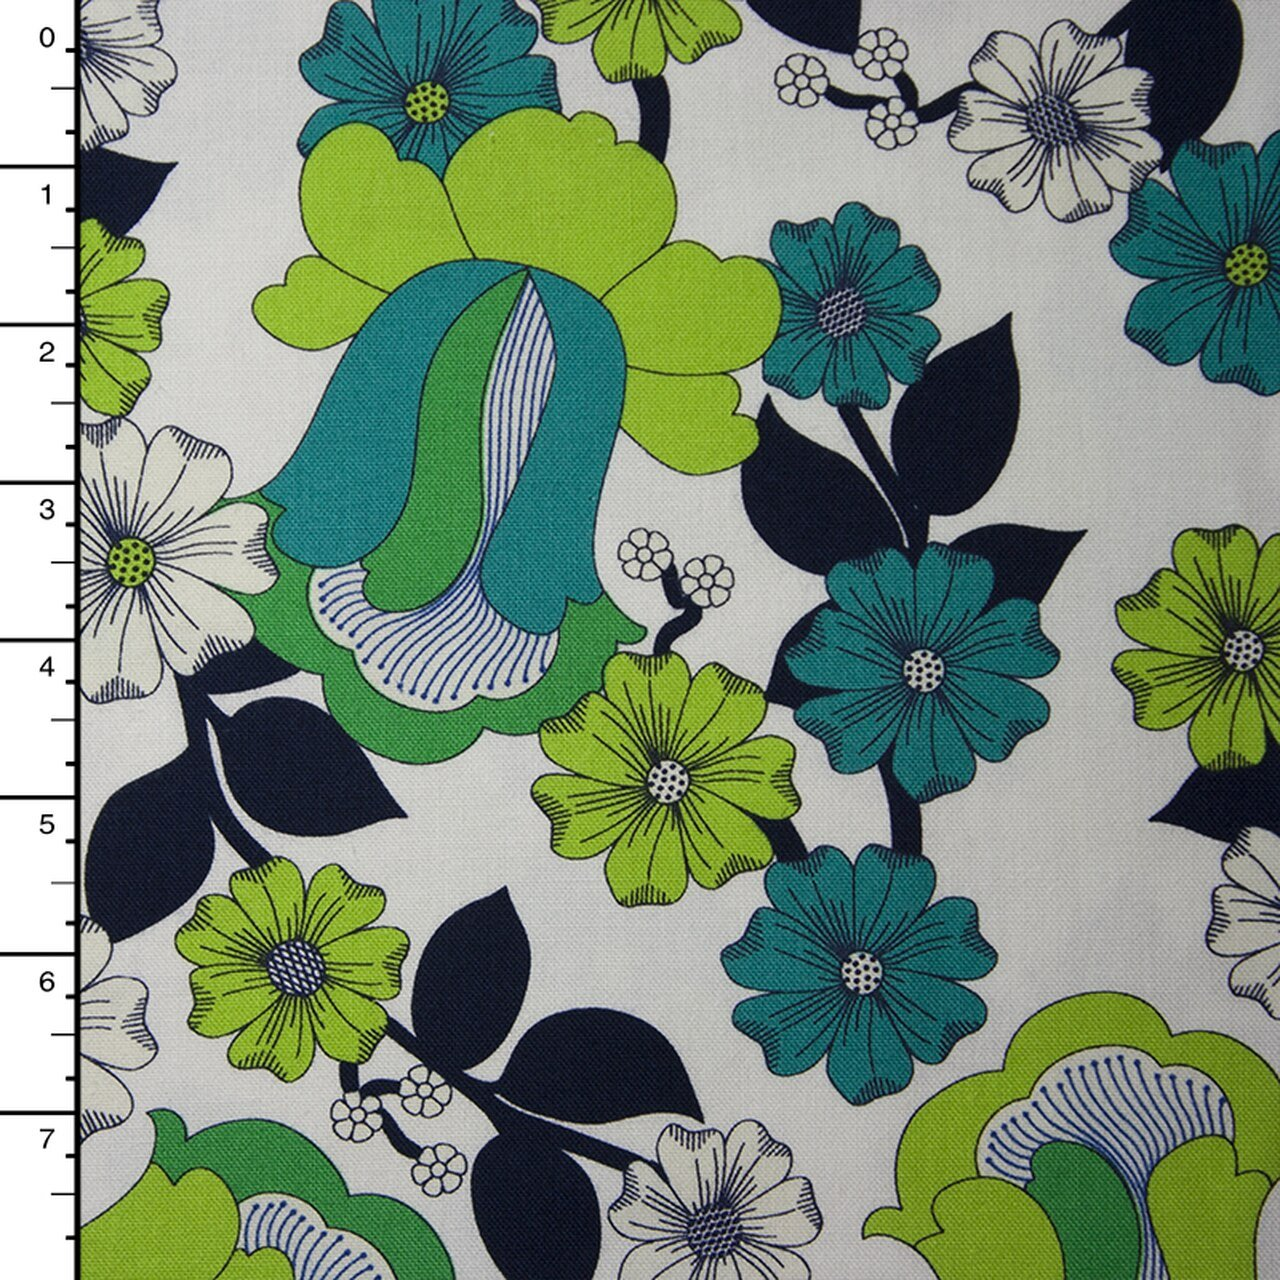 1 2/3 YARDS- Auntie's Attic Canvas- Robert Kaufman- Floral Bloom- Green